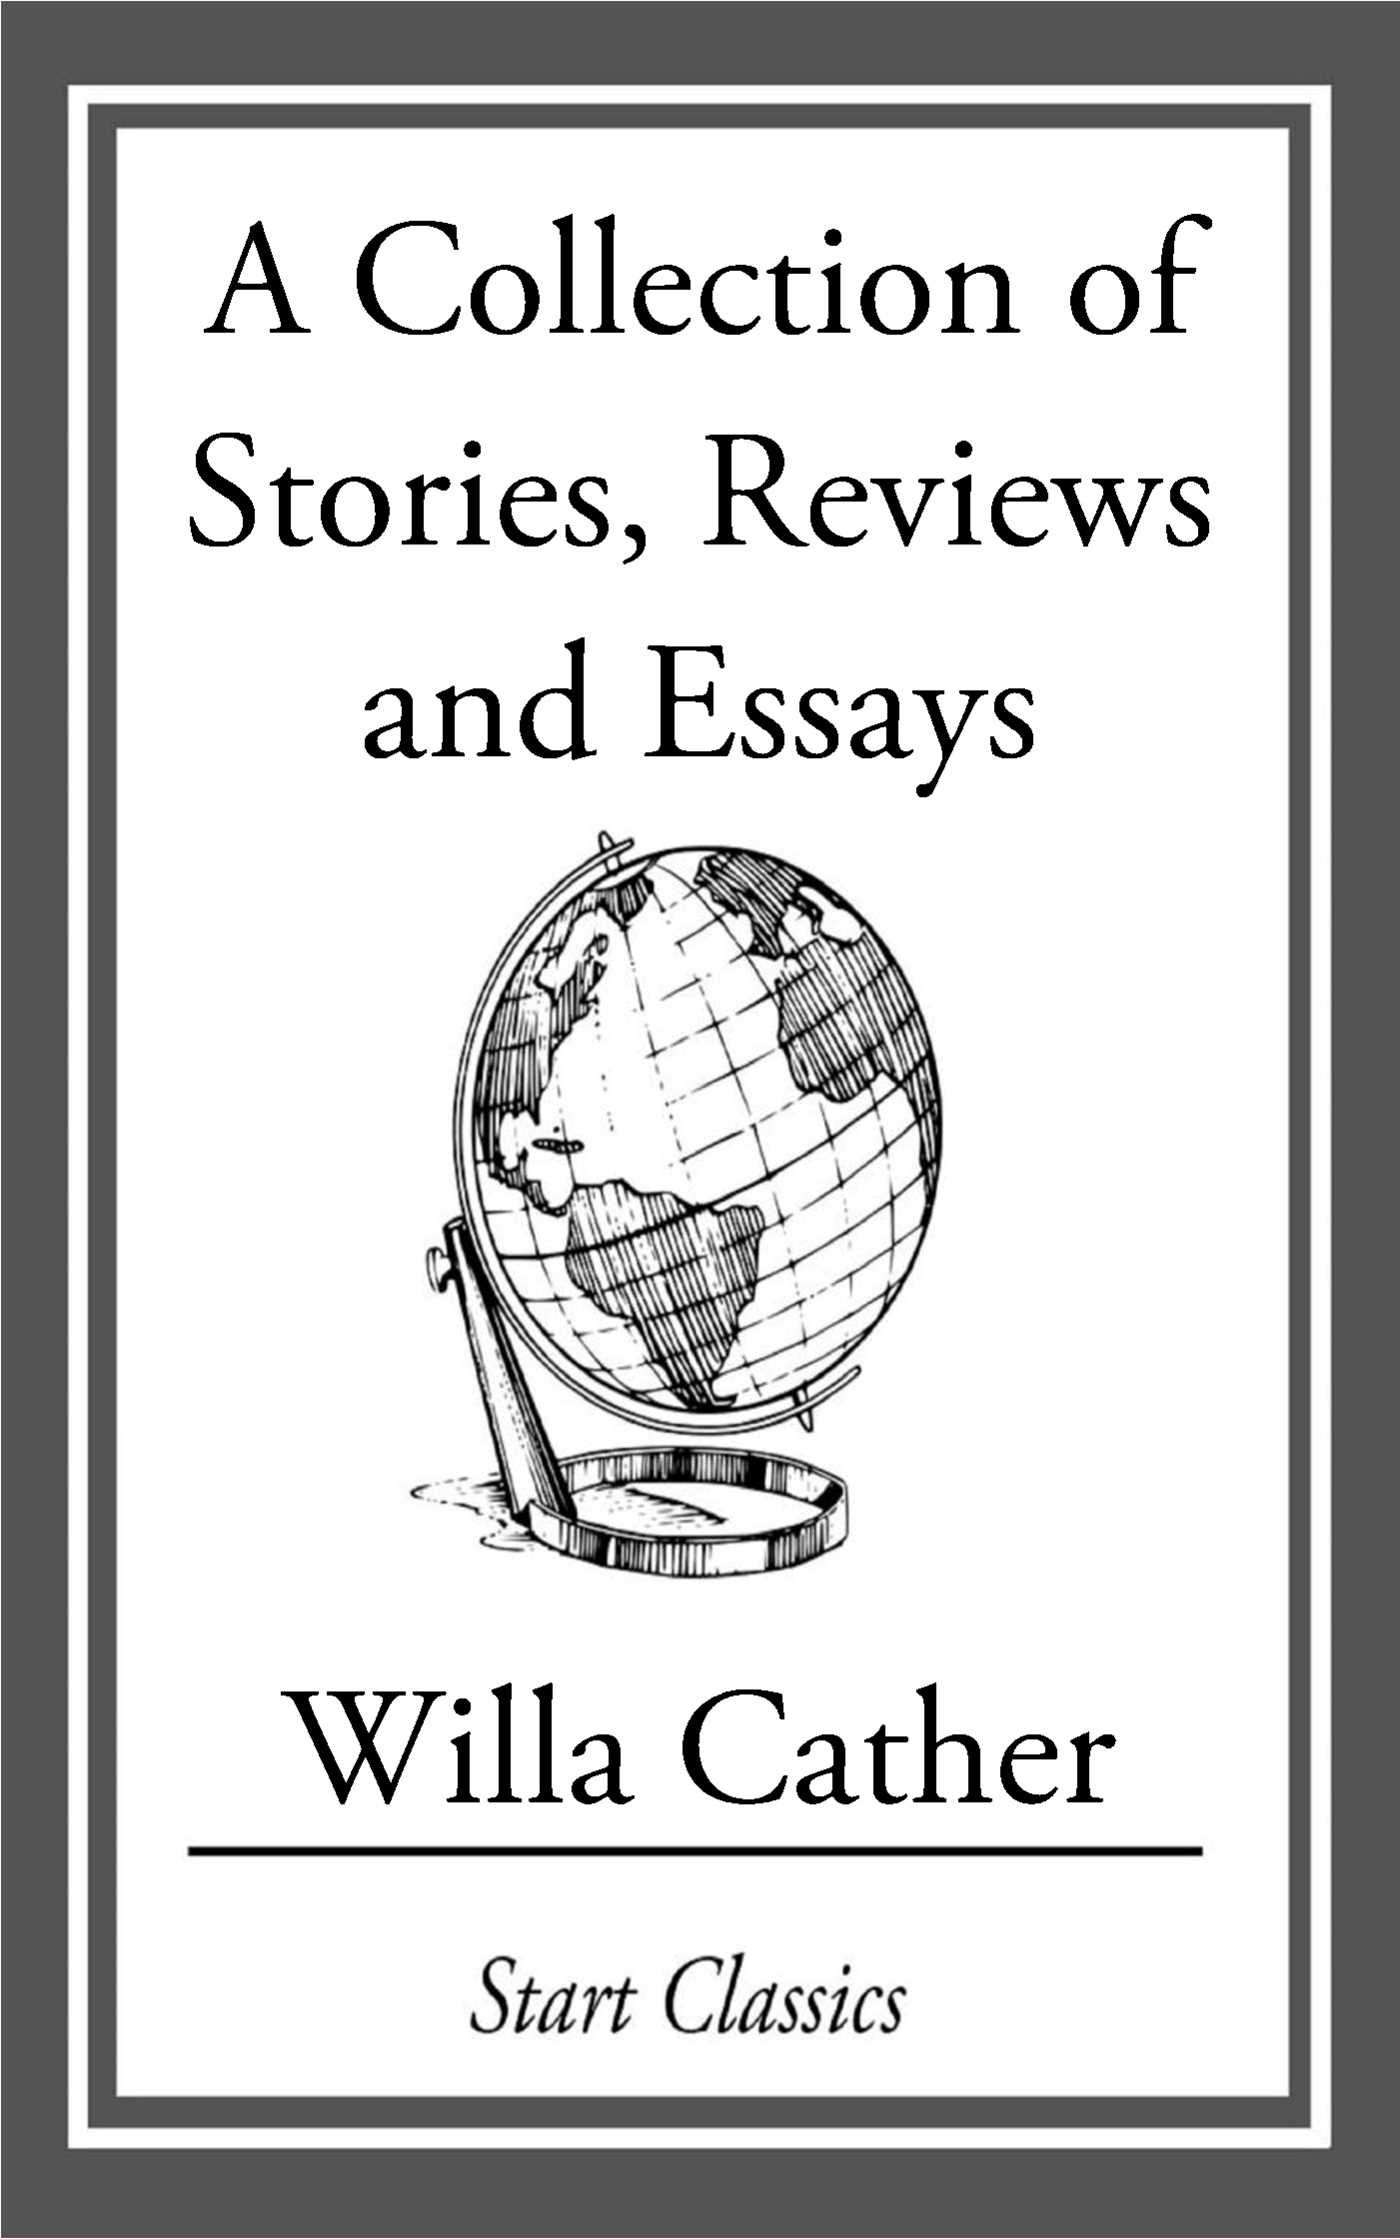 willa cathers use of landscape essay Essays and criticism on willa cather's my antonia - critical essays how either the landscape by willa cather, was the author's impressive use of imagery.